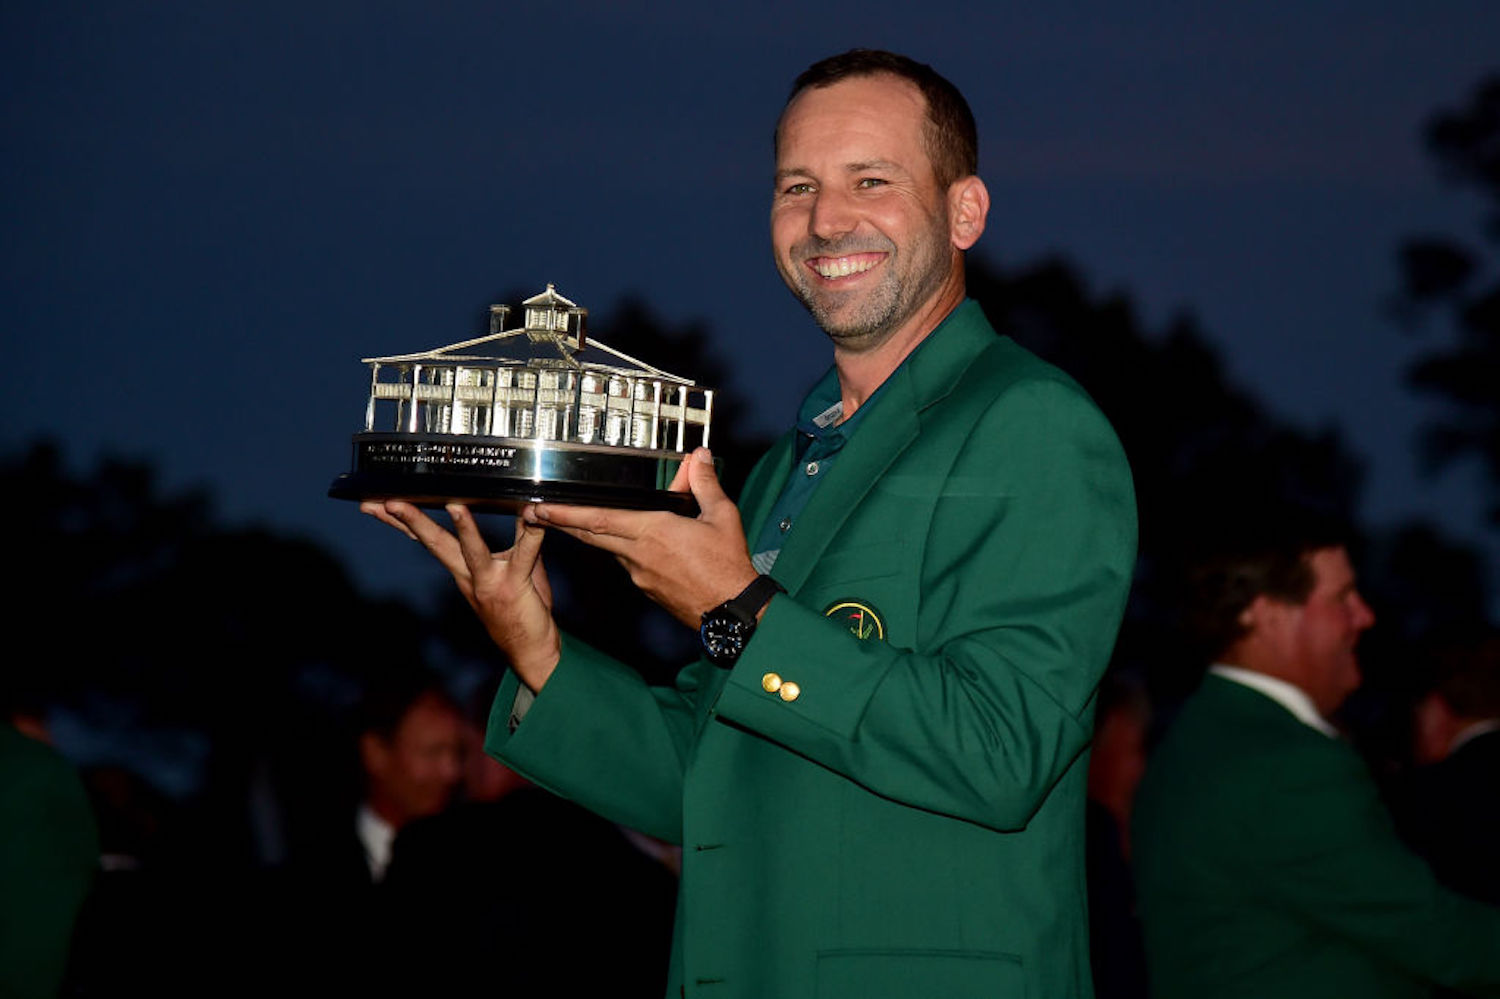 Sergio Garcia, who won The Masters in 2017, was forced to withdraw from the tournament this year after a positive COVID-19 test.